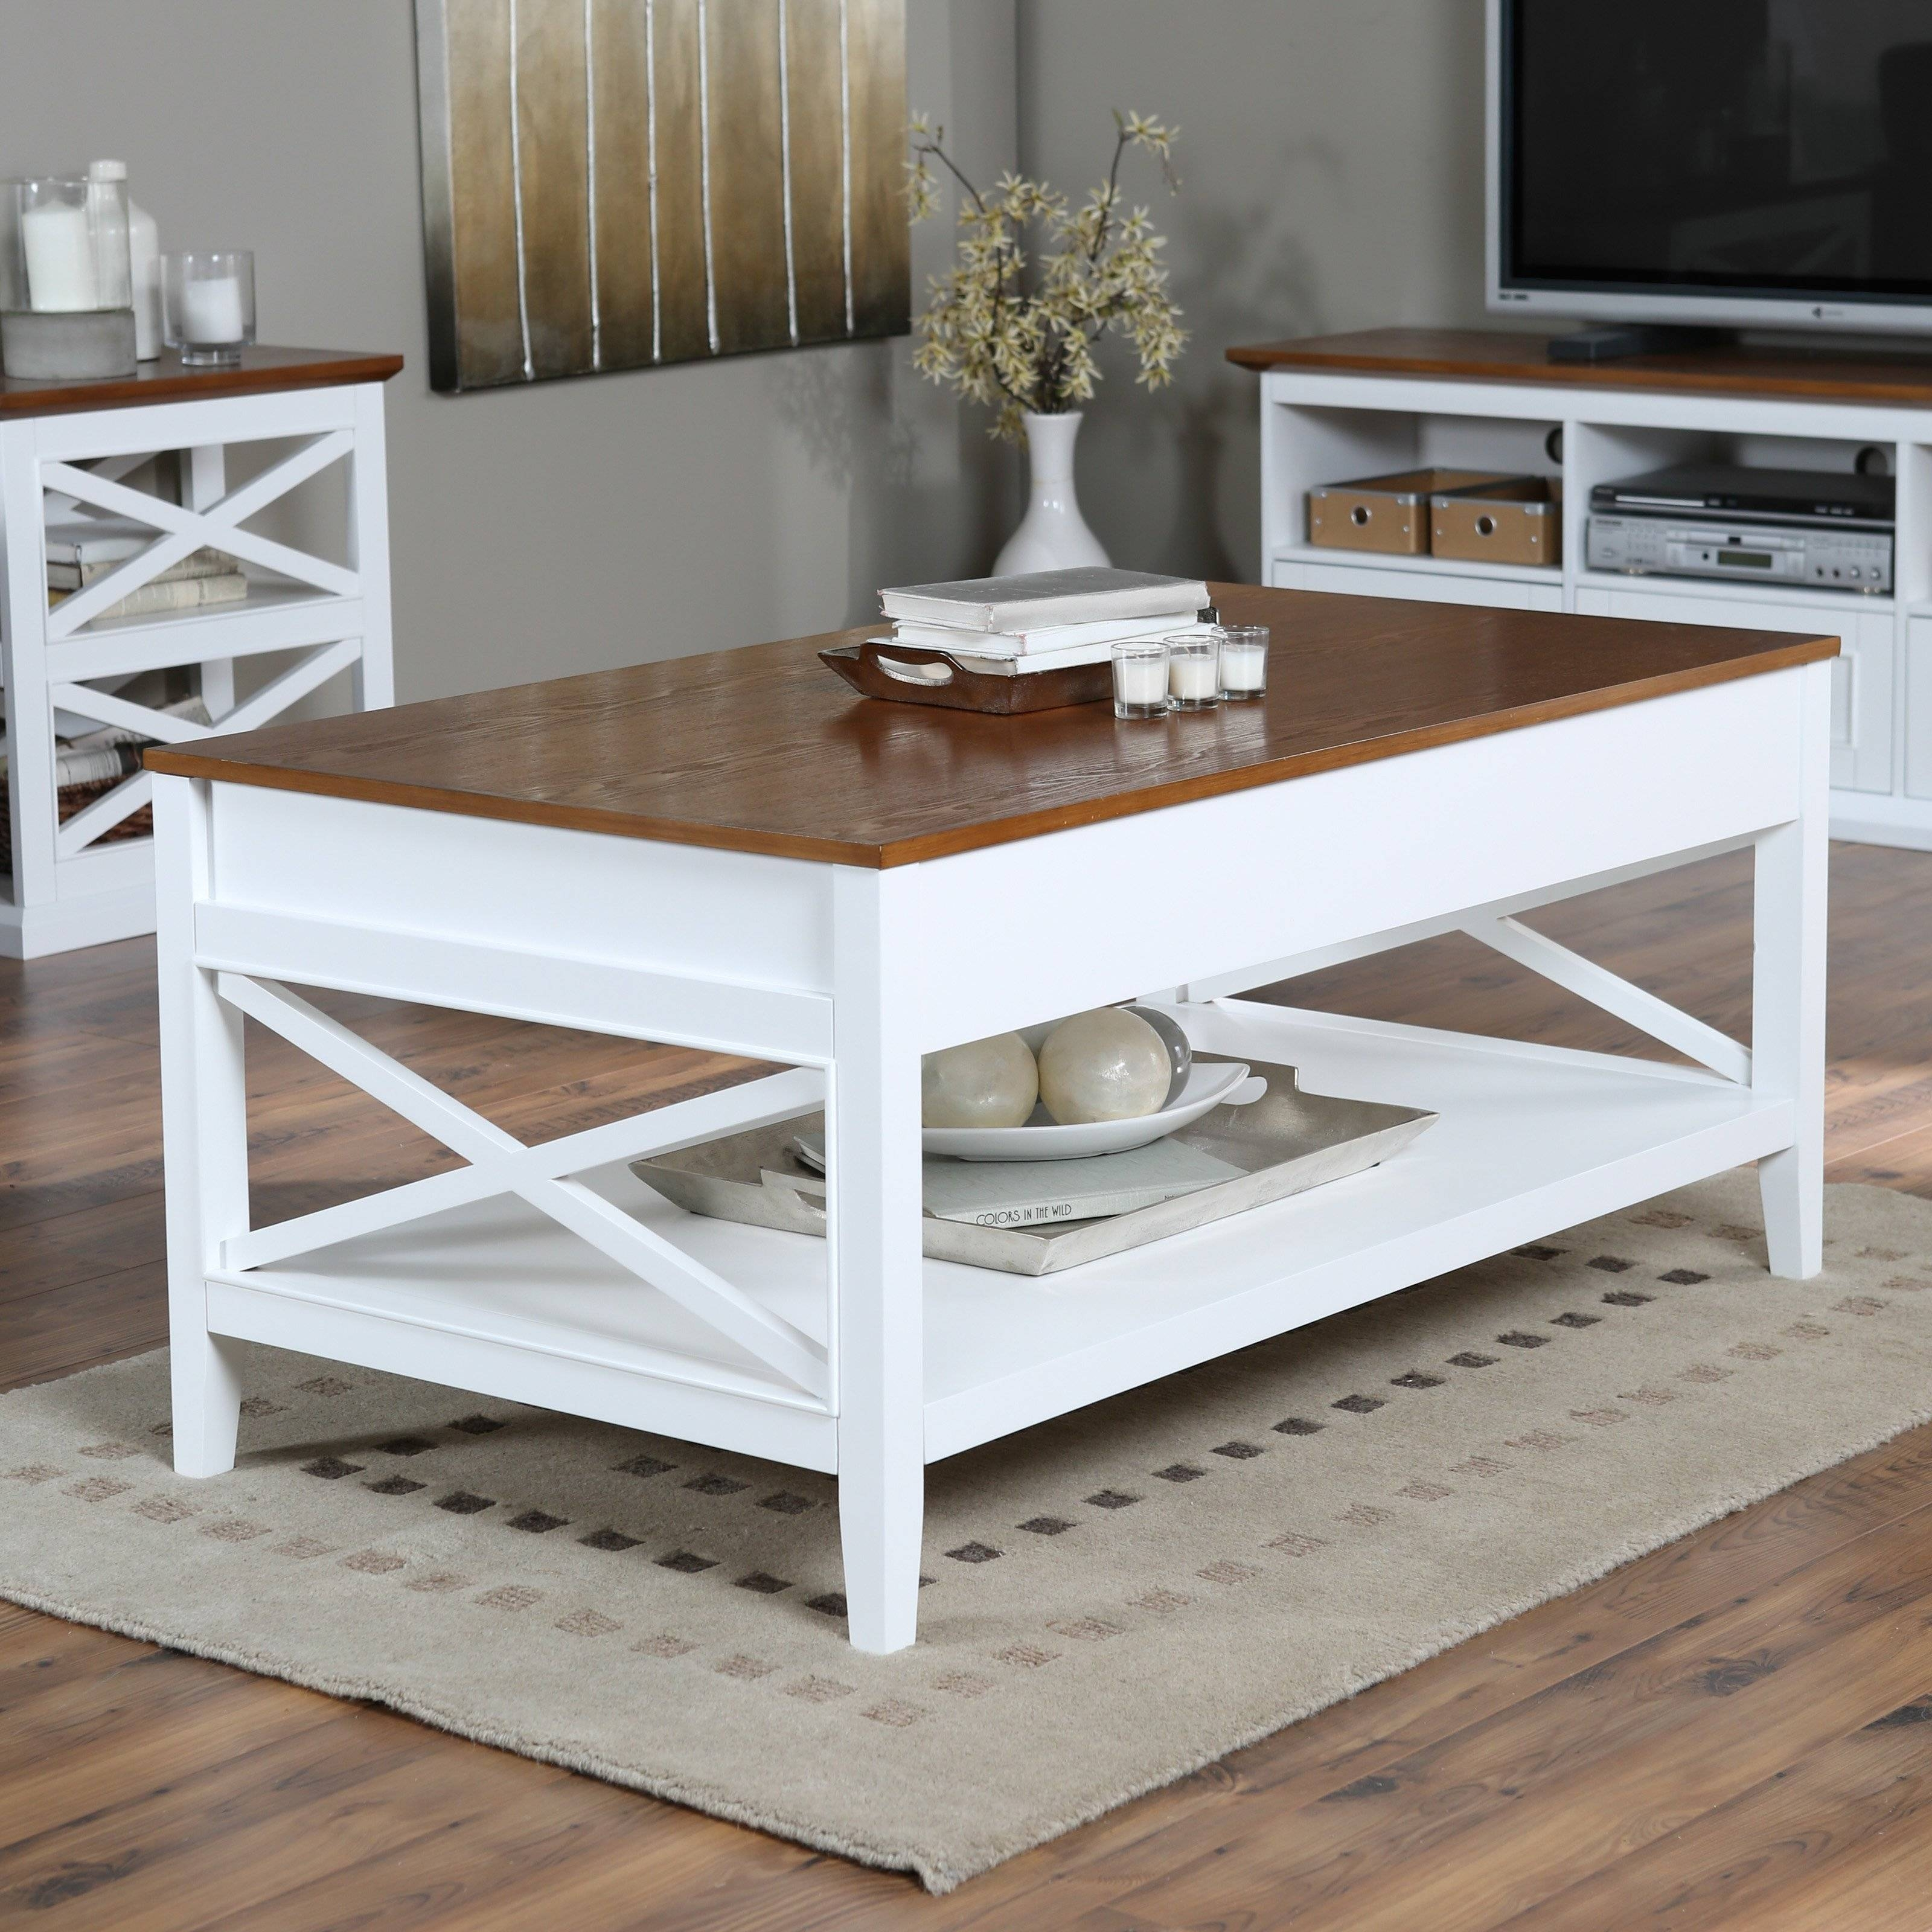 Belham Living Hampton Storage And Lift Top Coffee Table | Hayneedle throughout Lift Coffee Tables (Image 2 of 30)